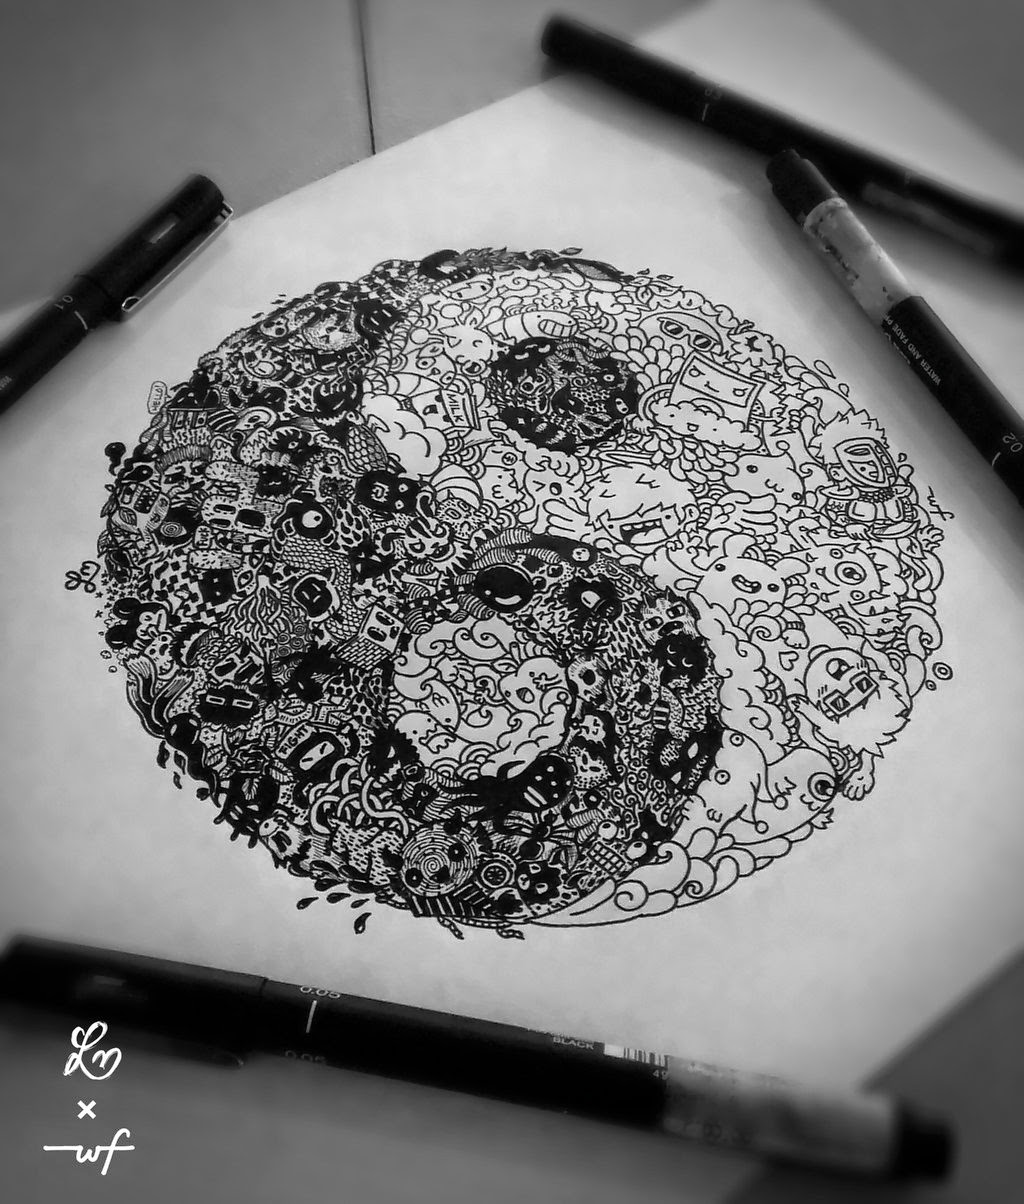 31-YinYang-Doodle-Lei-Melendres-Leight-Infinity-Mix-Doodles-www-designstack-co